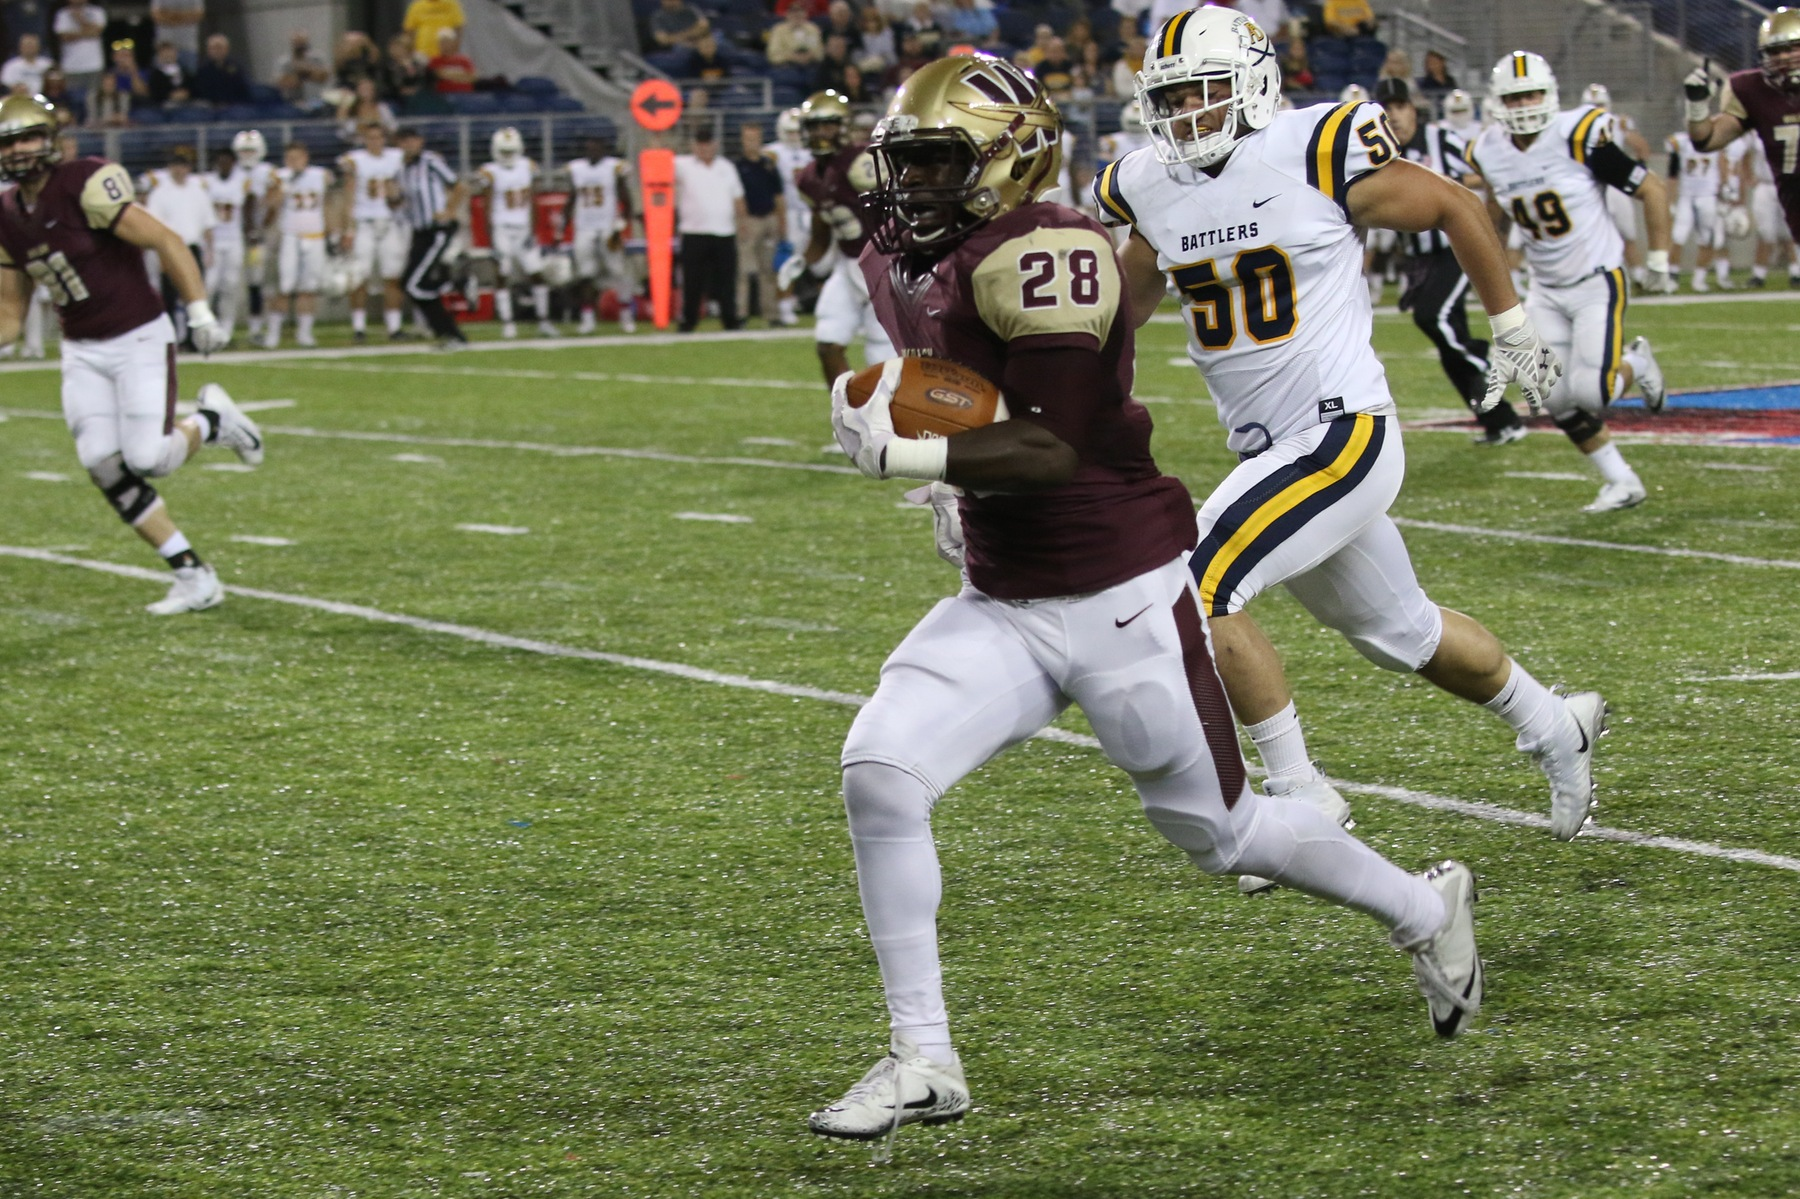 Home Sweet Homecoming For Cavaliers In Win Vs. AB